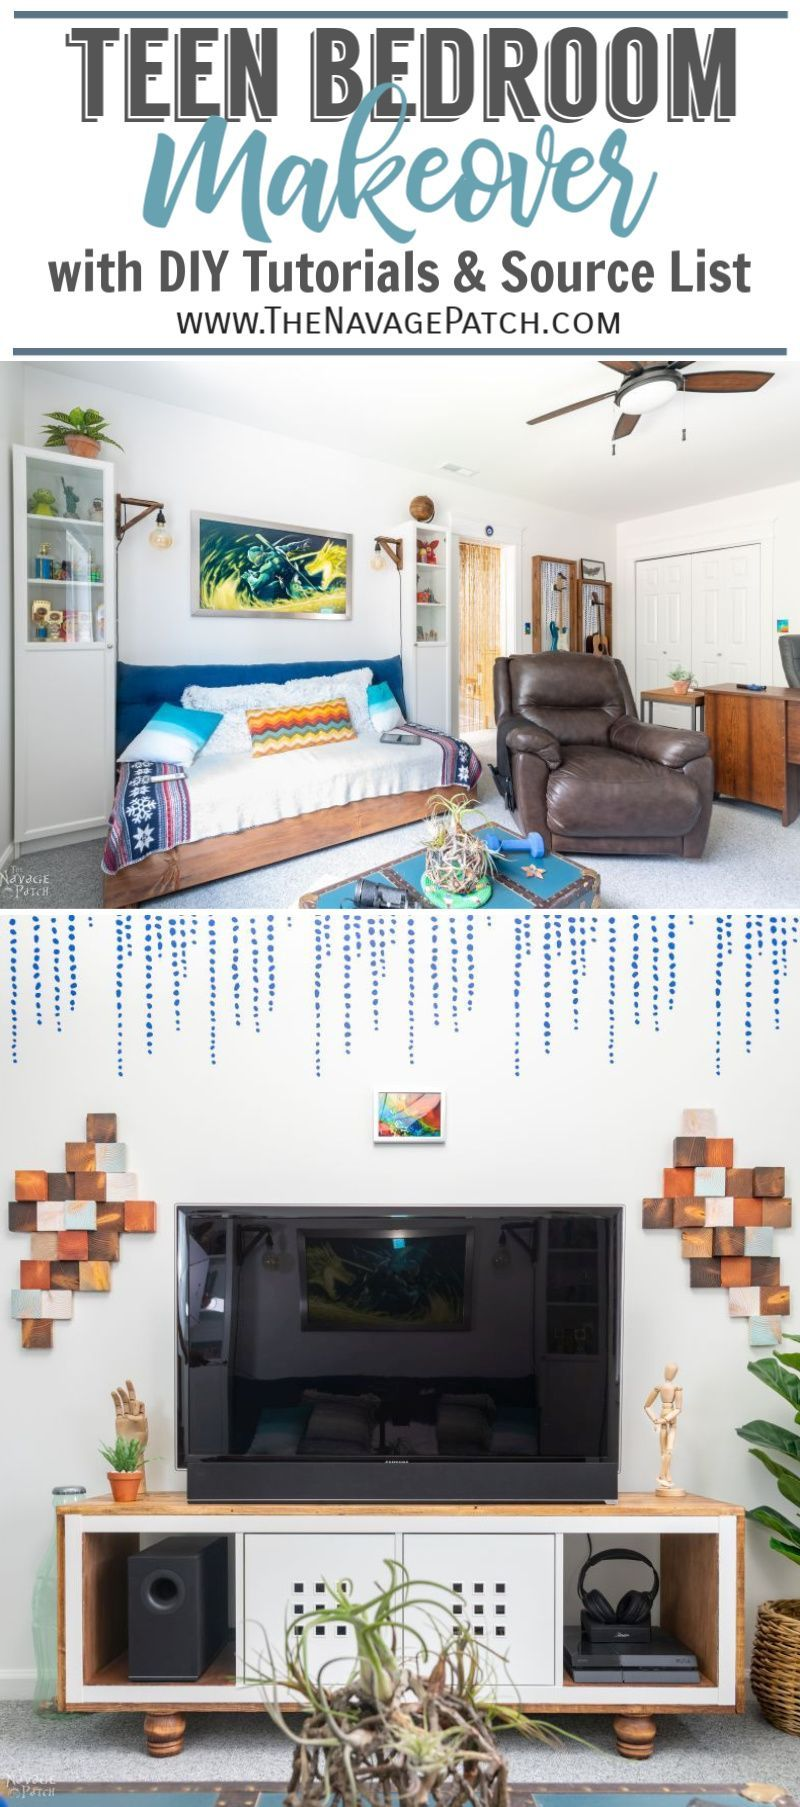 Teen Bedroom Makeover Reveal pin image | TheNavagePatch.com